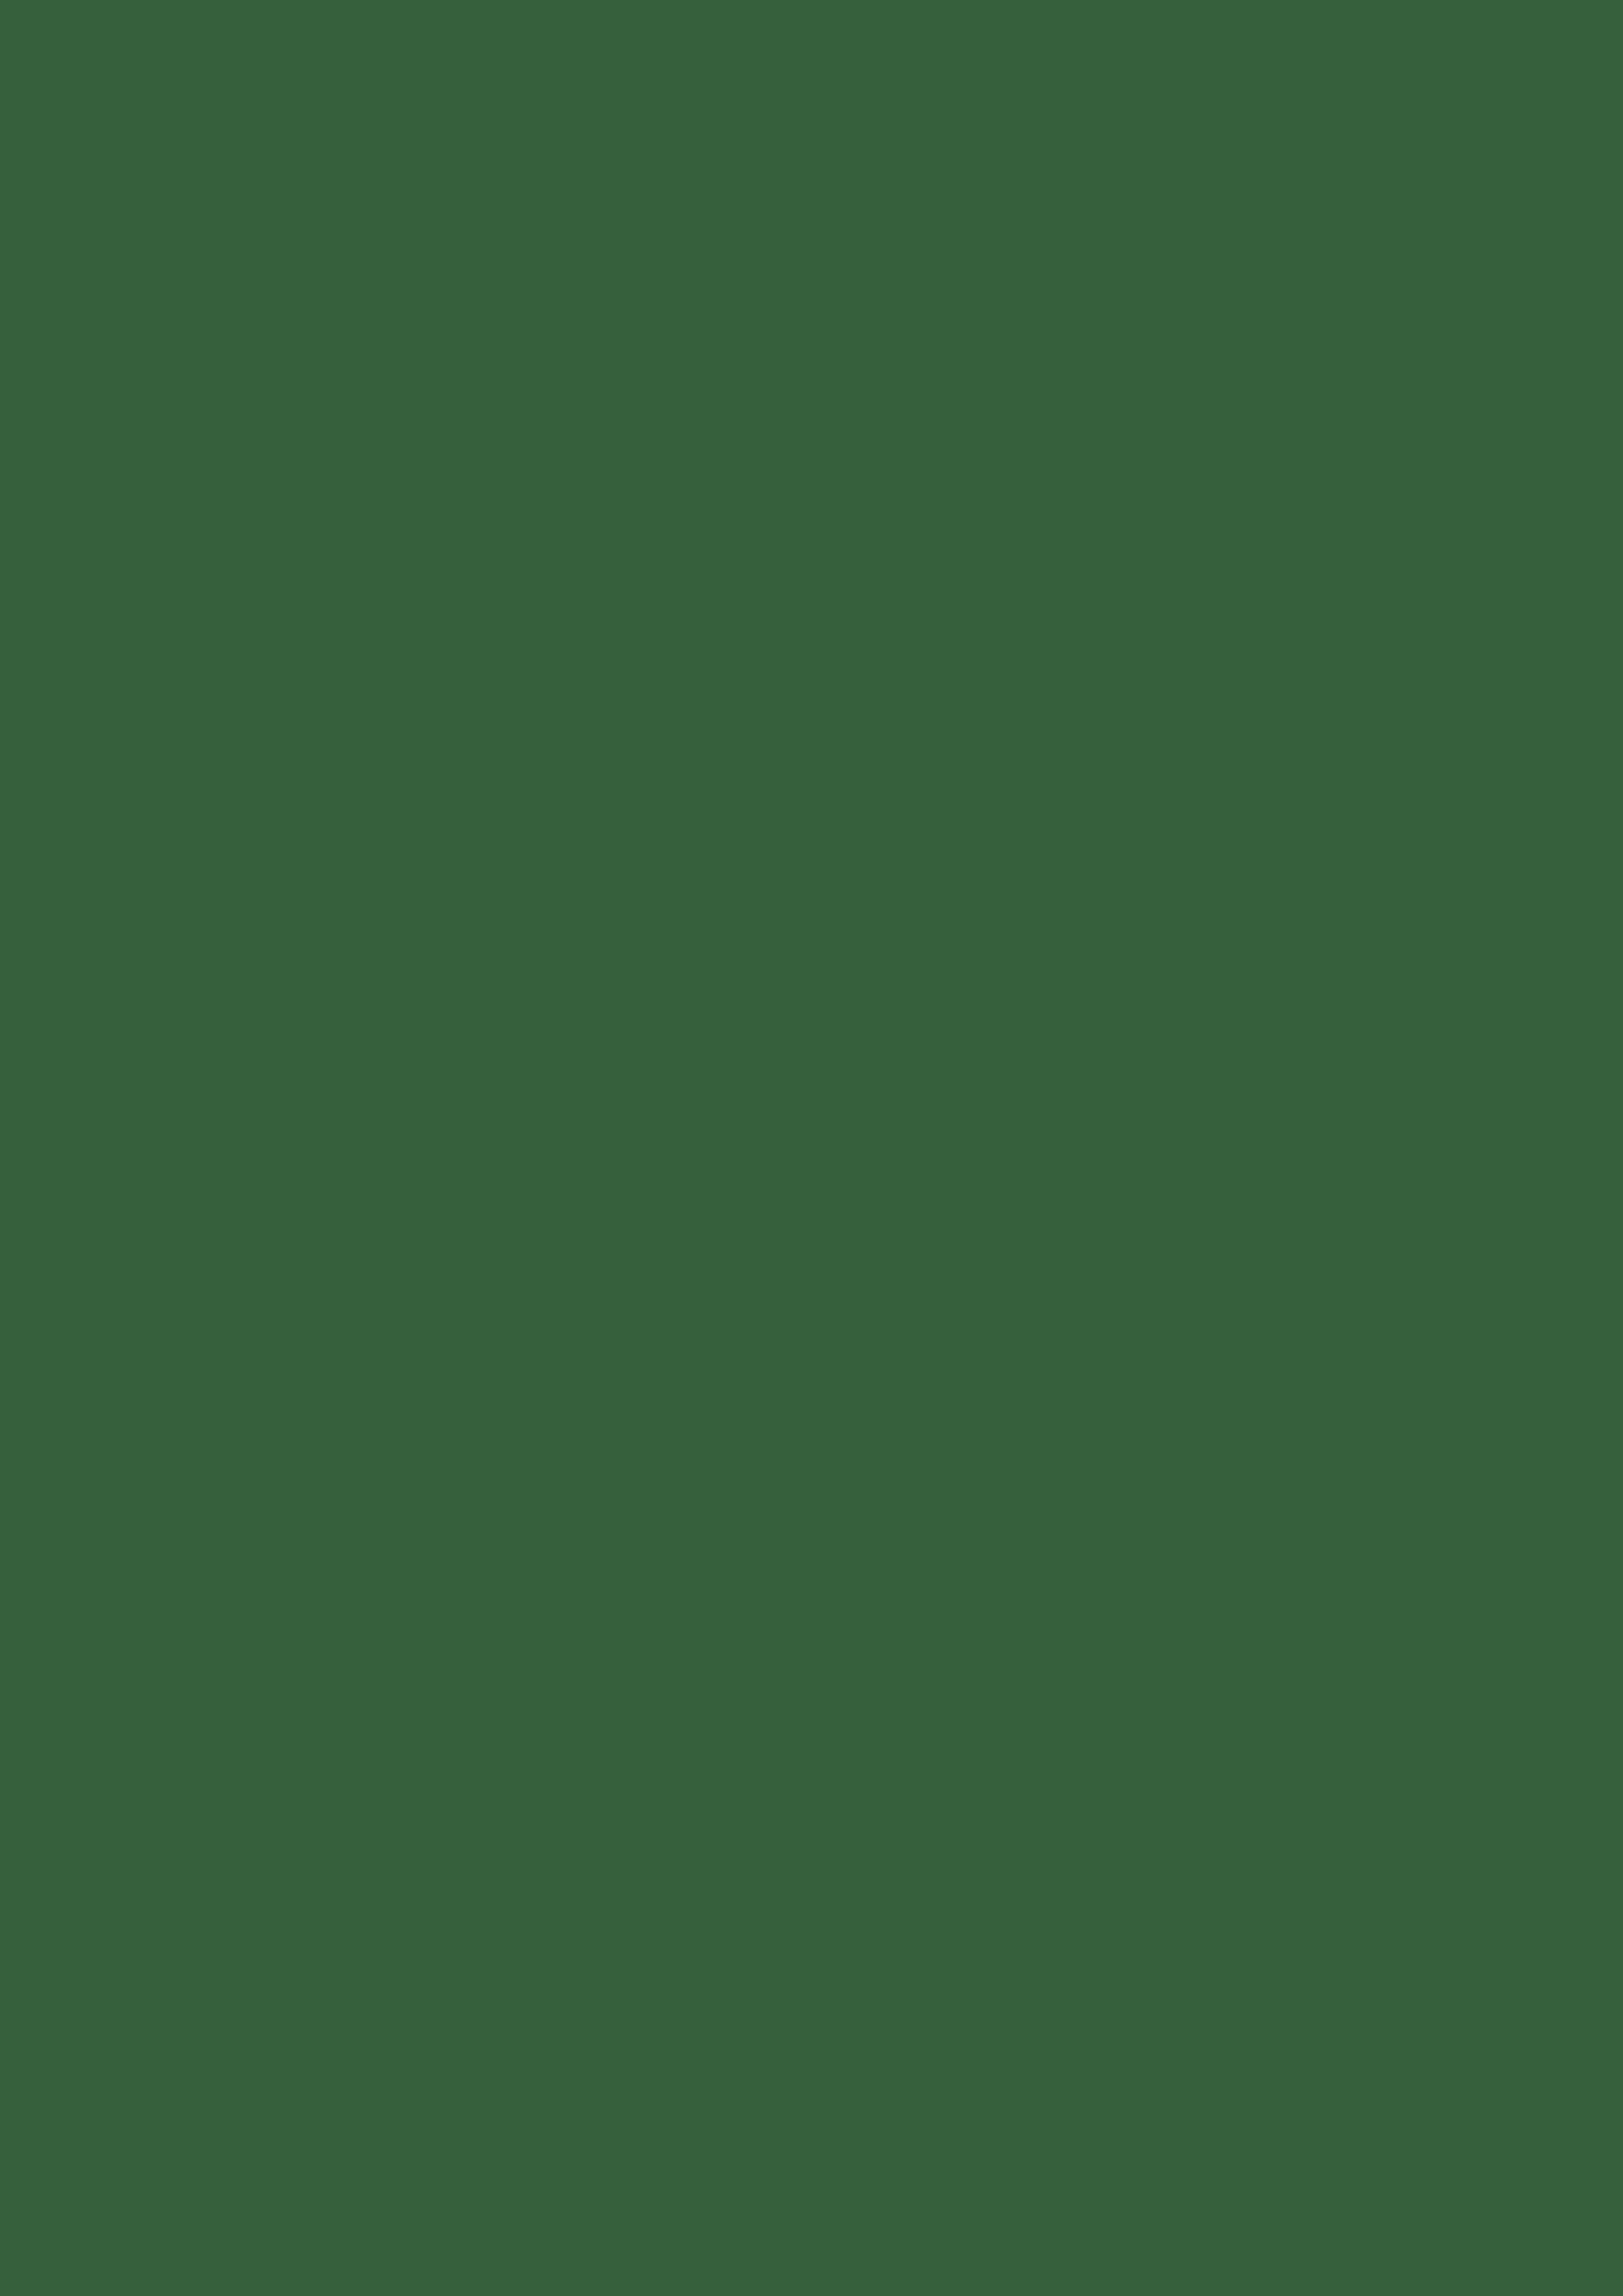 2480x3508 Hunter Green Solid Color Background